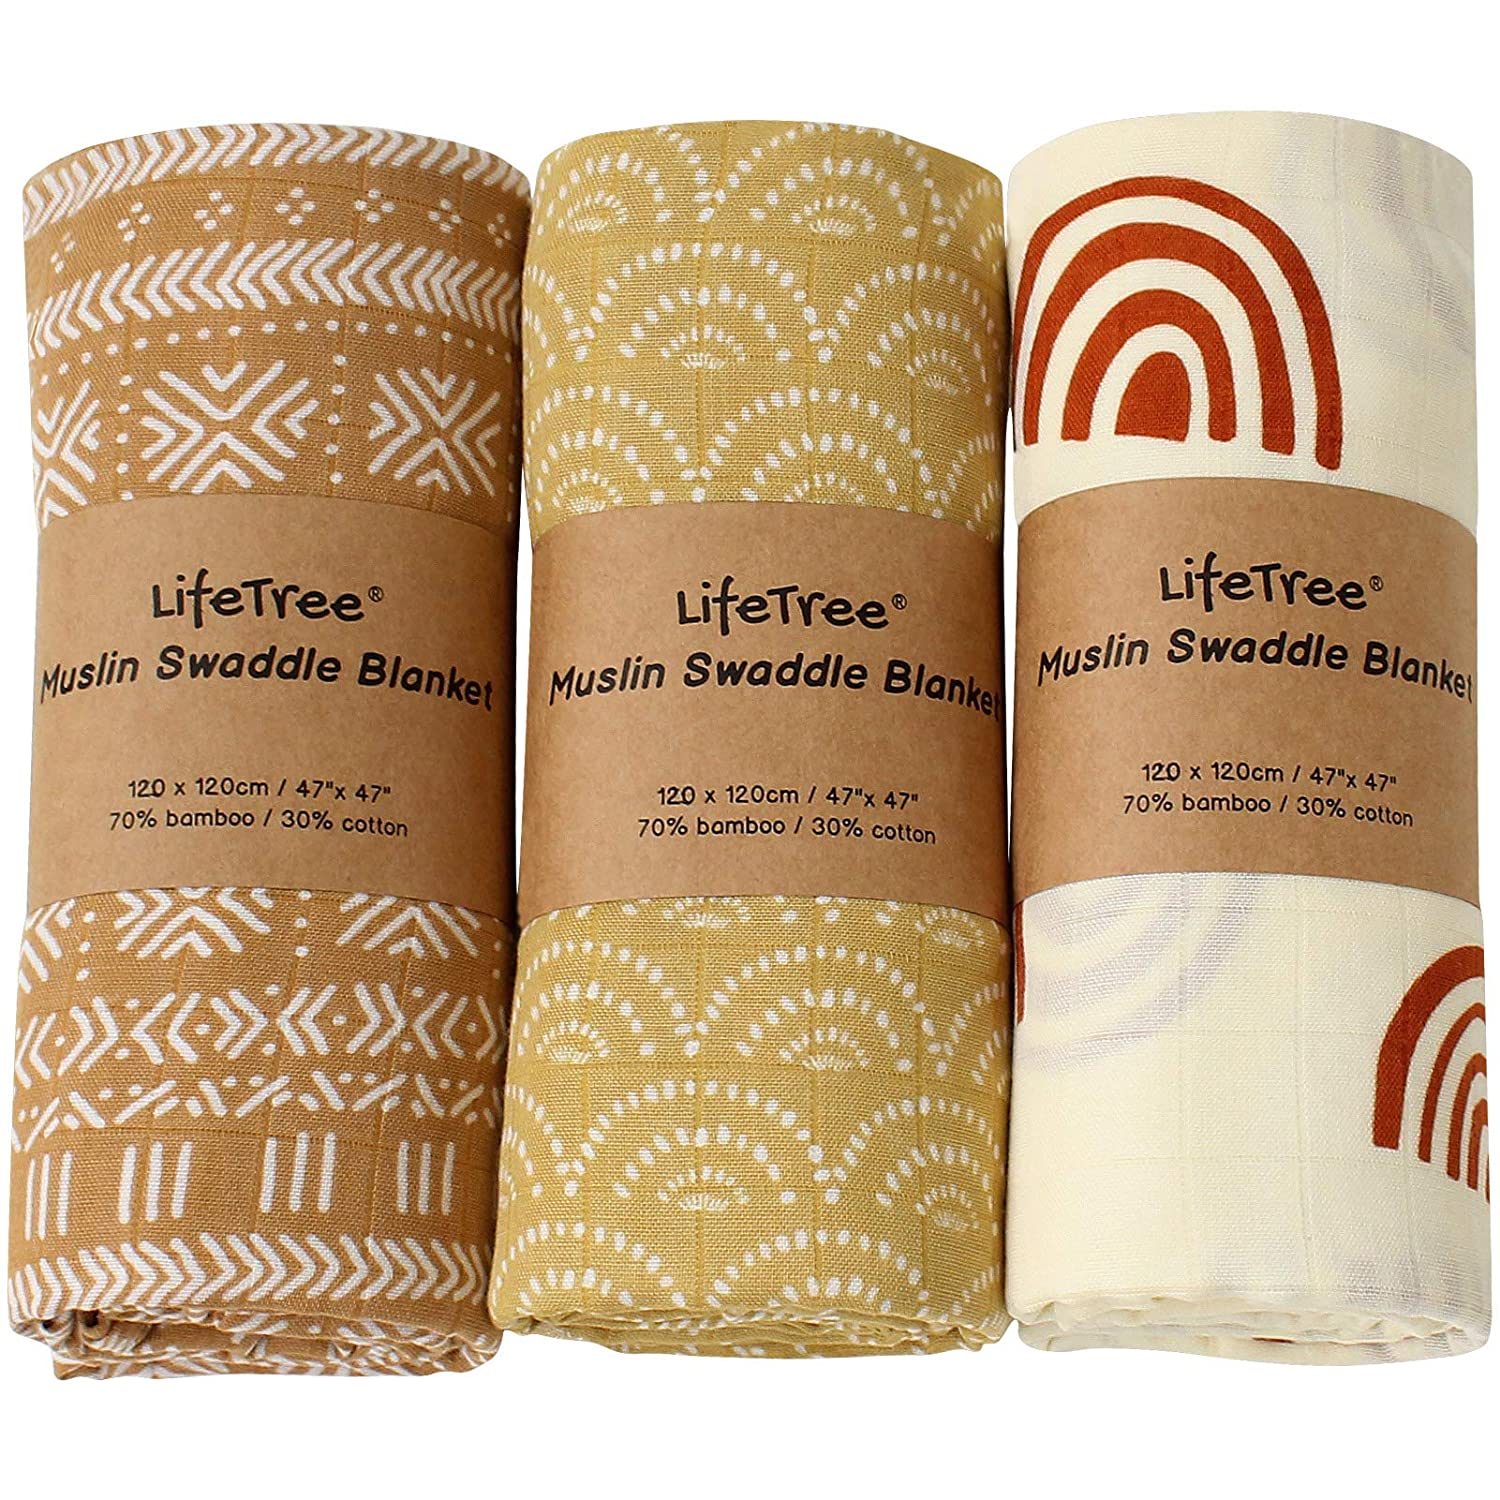 LifeTree 3 Pack Baby Swaddle Blankets - Soft Bamboo Cotton Muslin Swaddle Blankets - Earthy Color Collection, Lightweight, Breathable, Large 47 x 47 inches